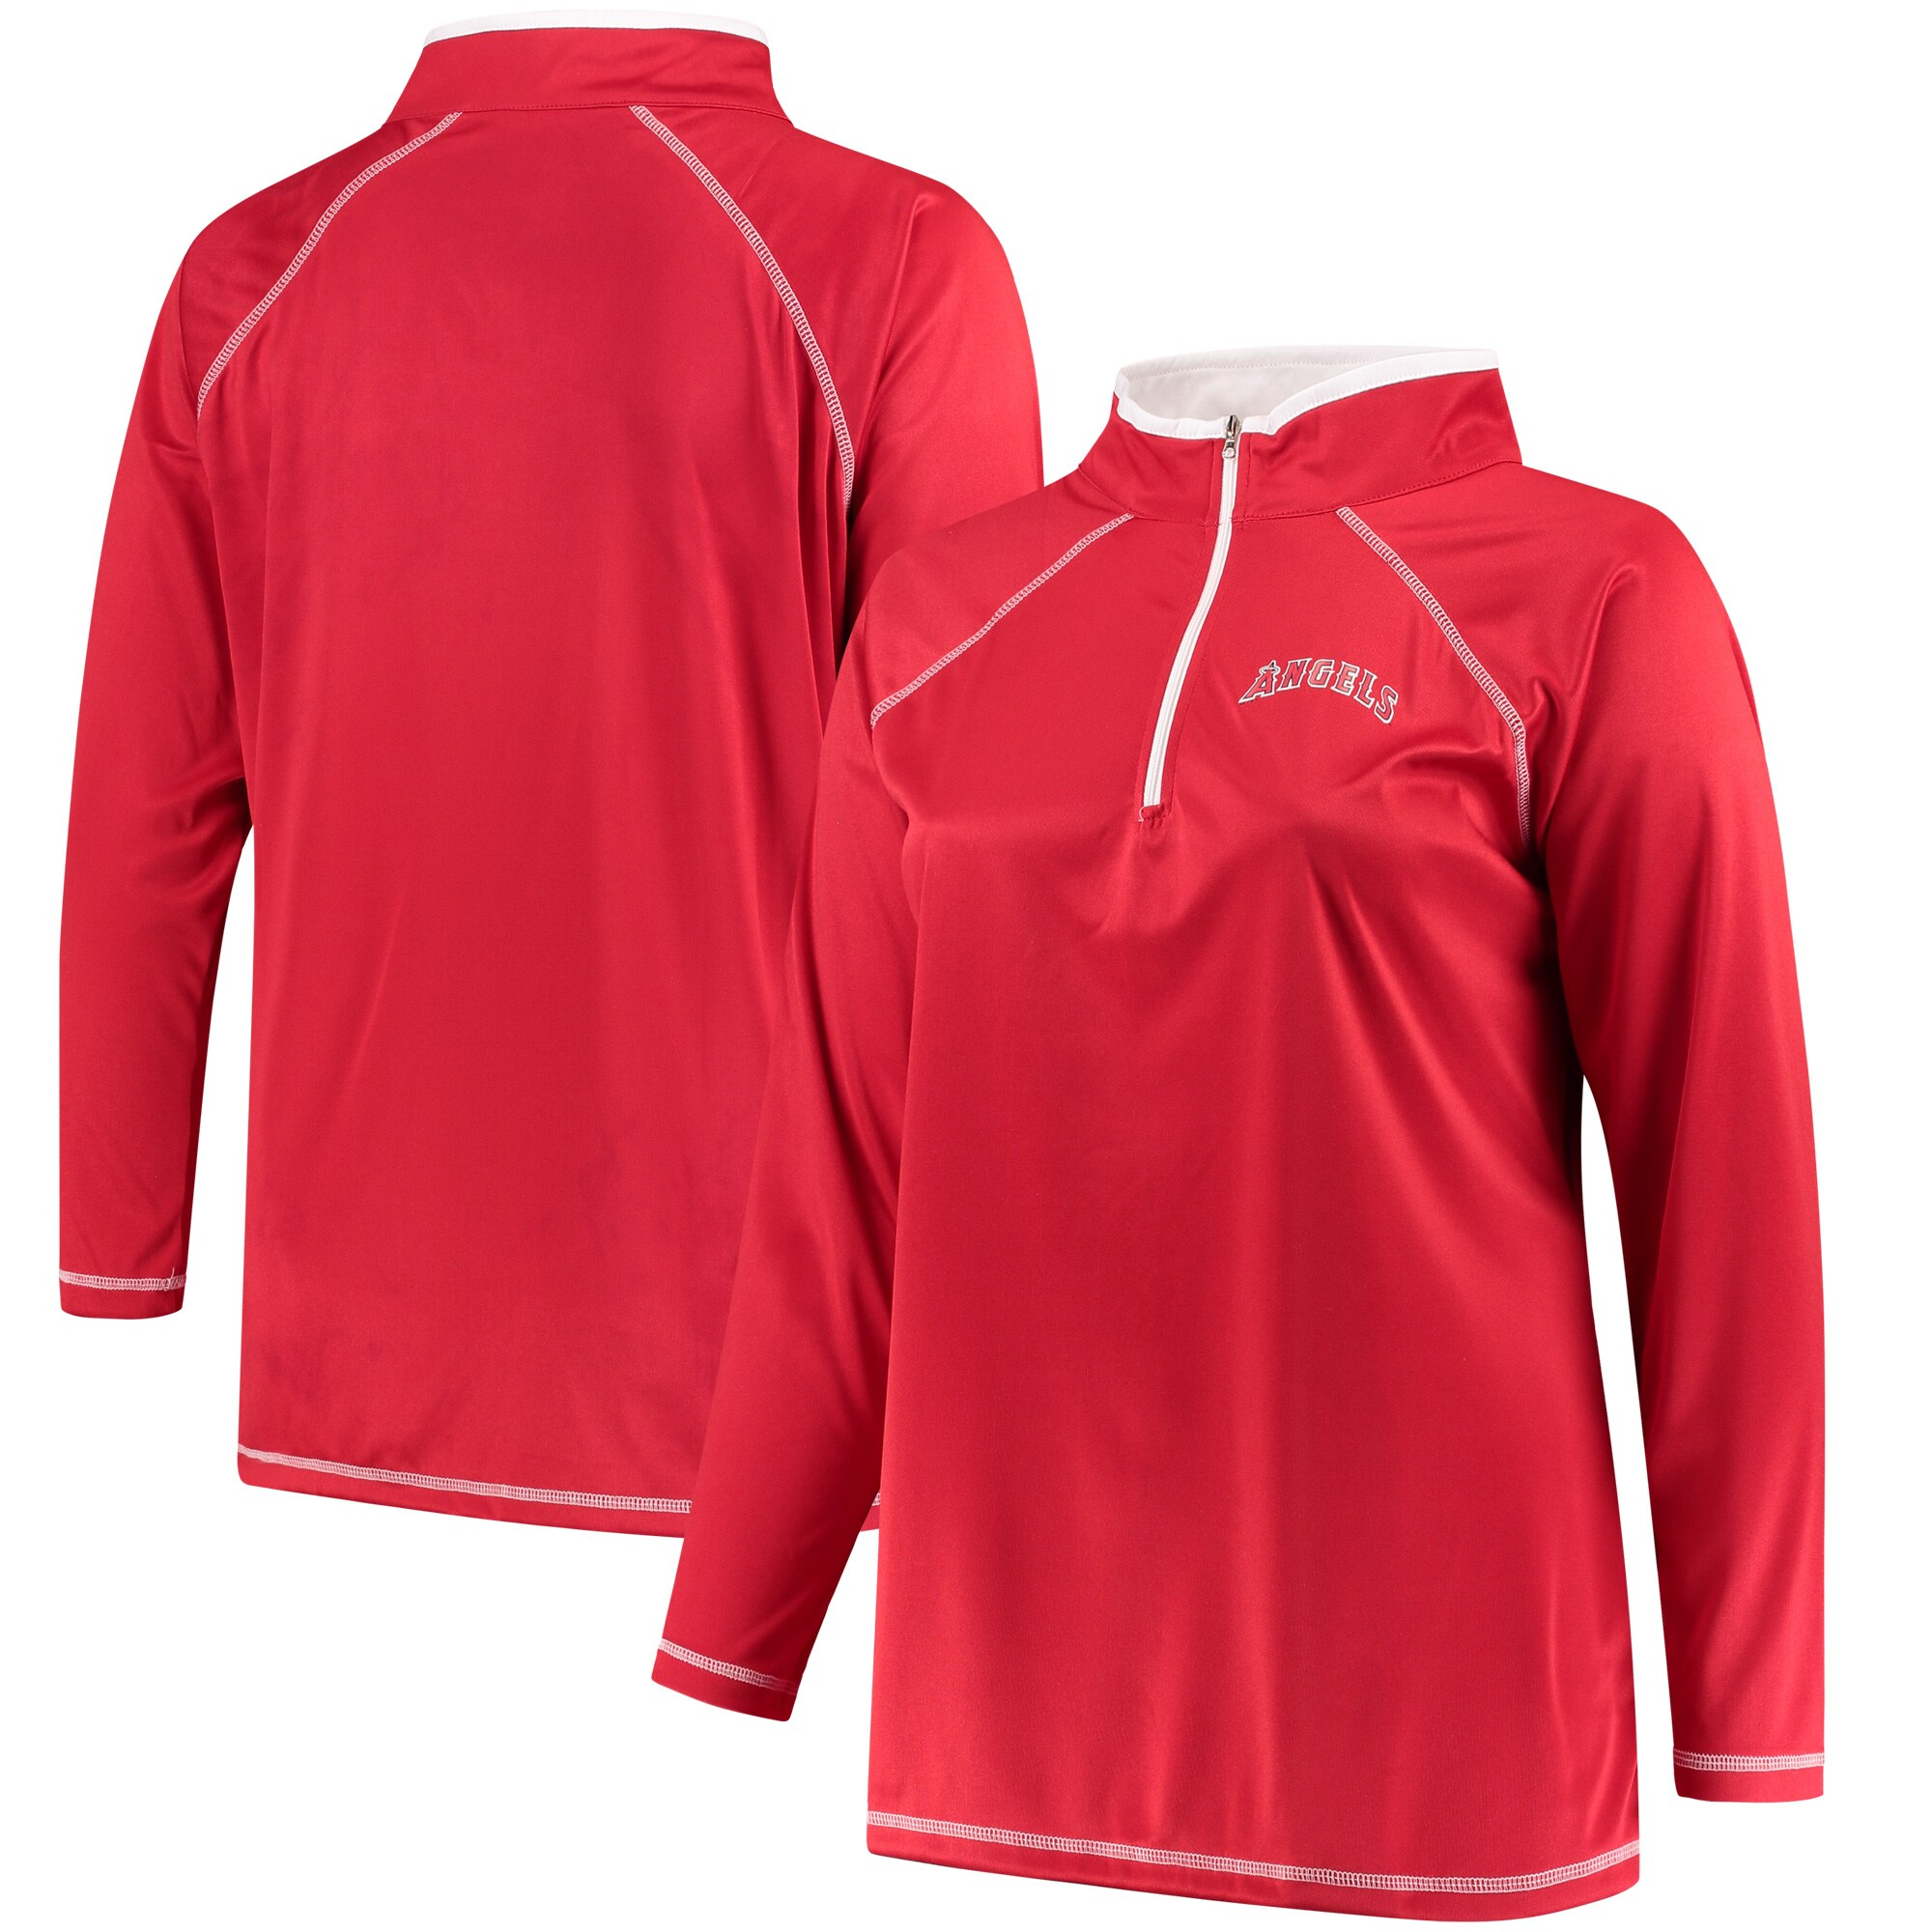 Los Angeles Angels Majestic Women's Plus Size Quarter-Zip Pullover Jacket - Red